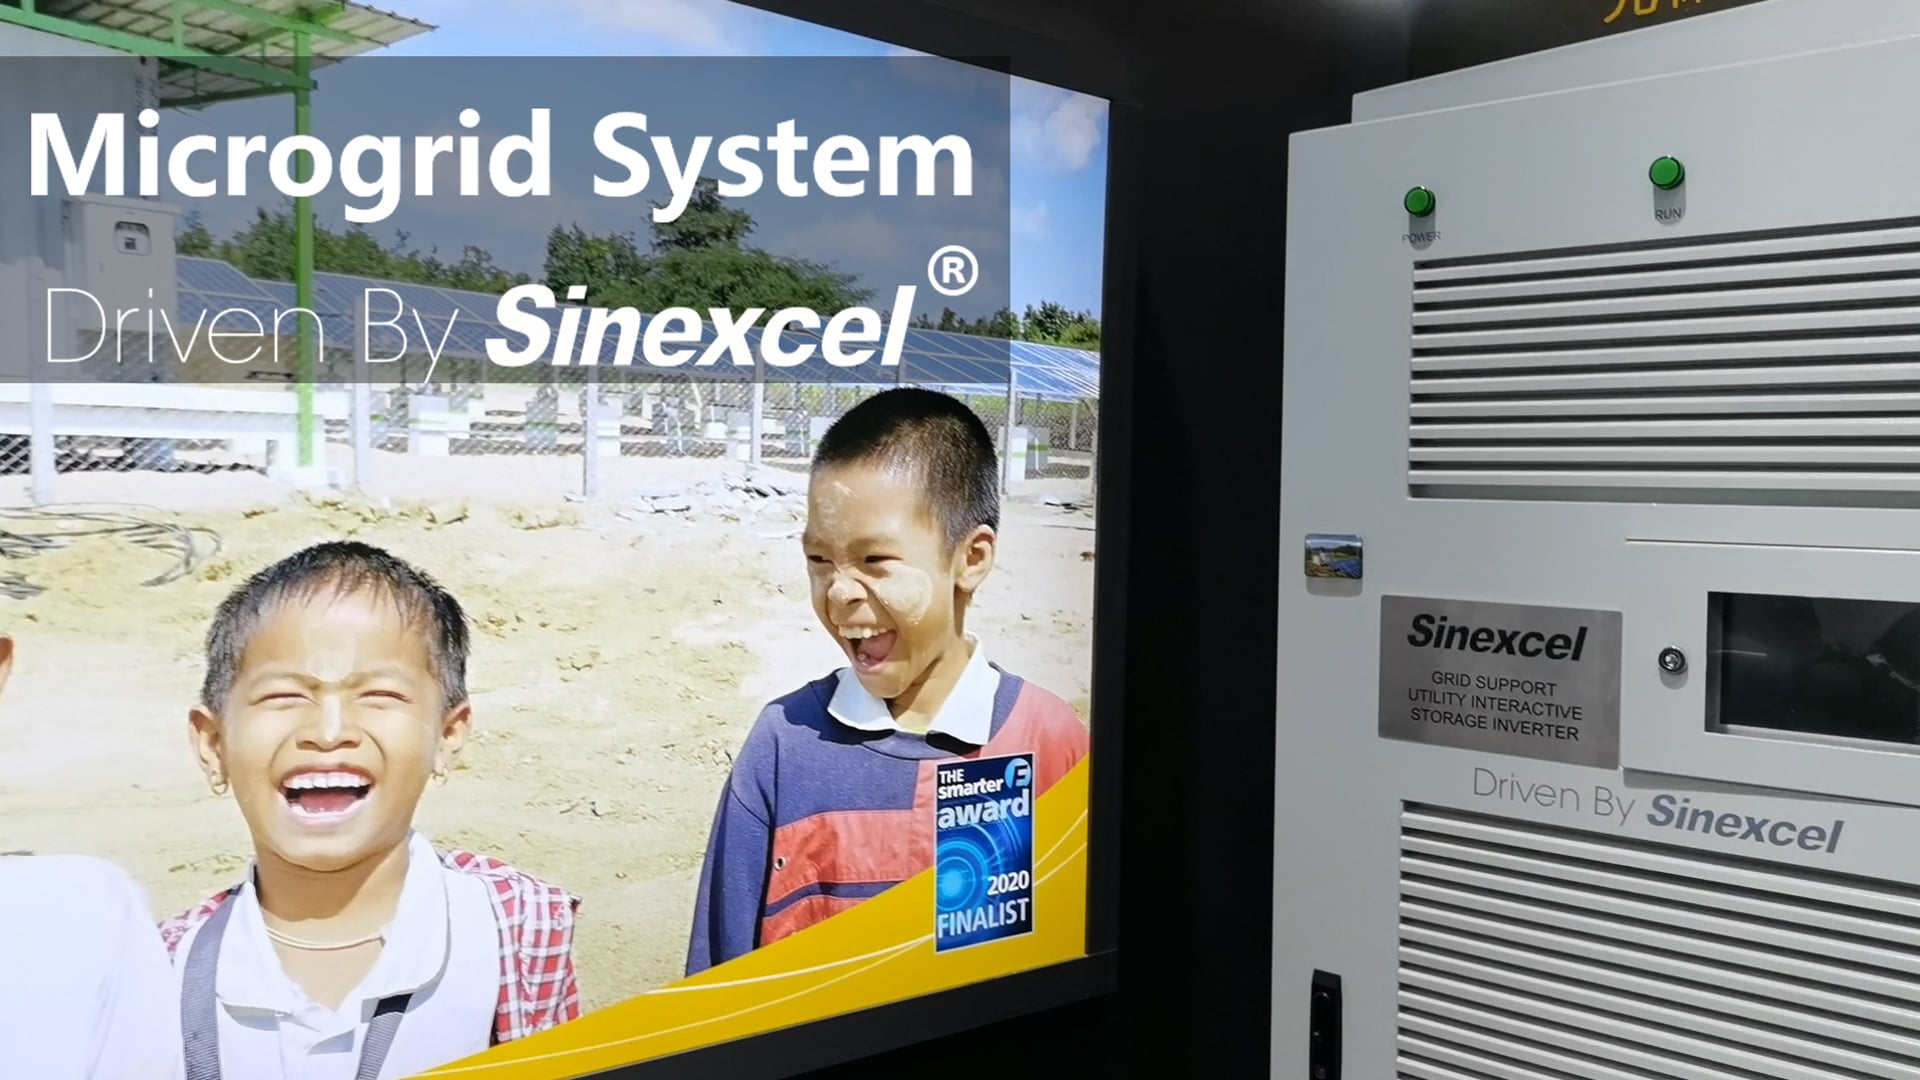 Microgrid system driven by Sinexcel